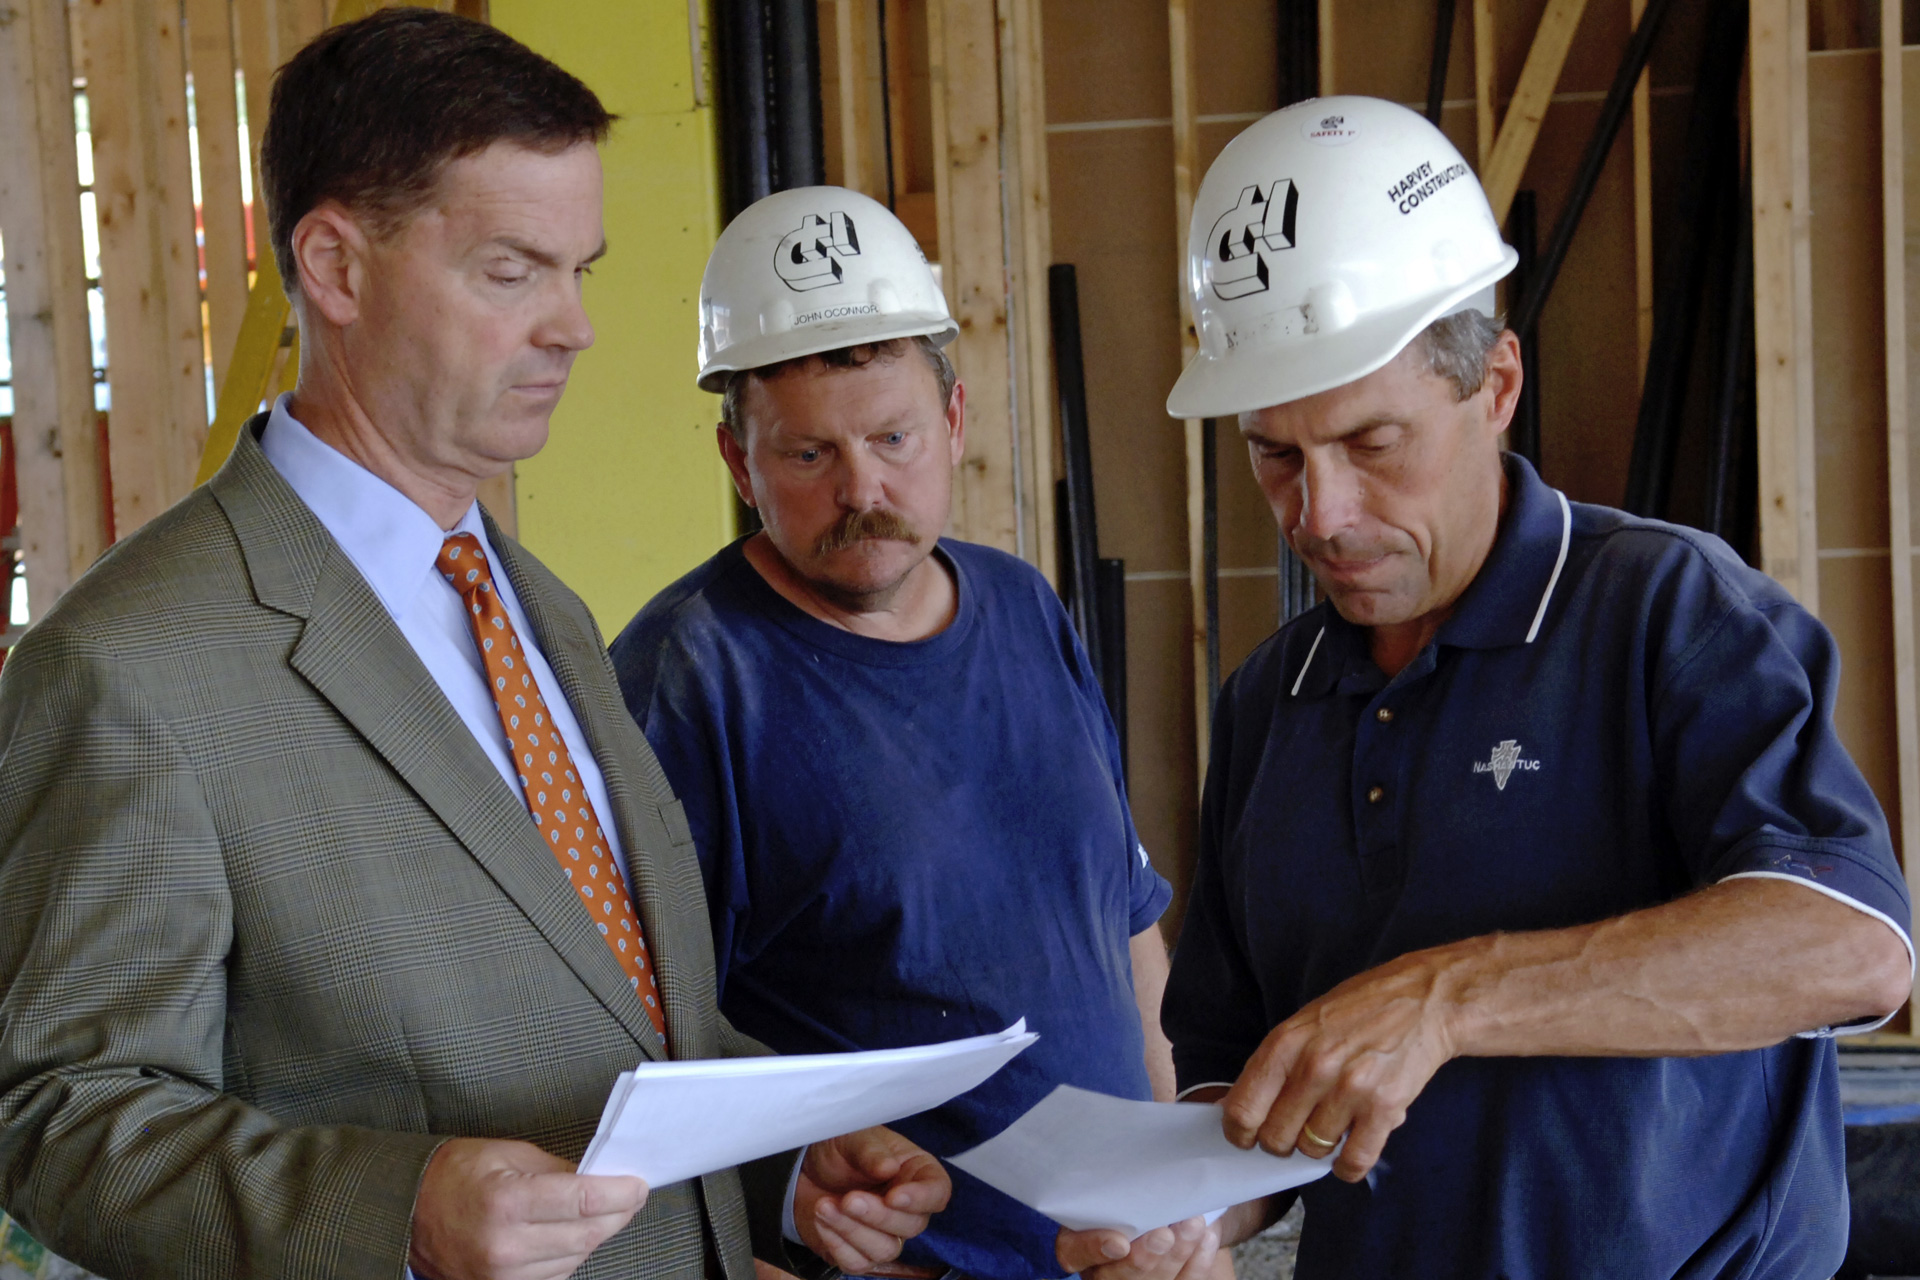 Man in suit and tie talks with a couple builders in safety helmets